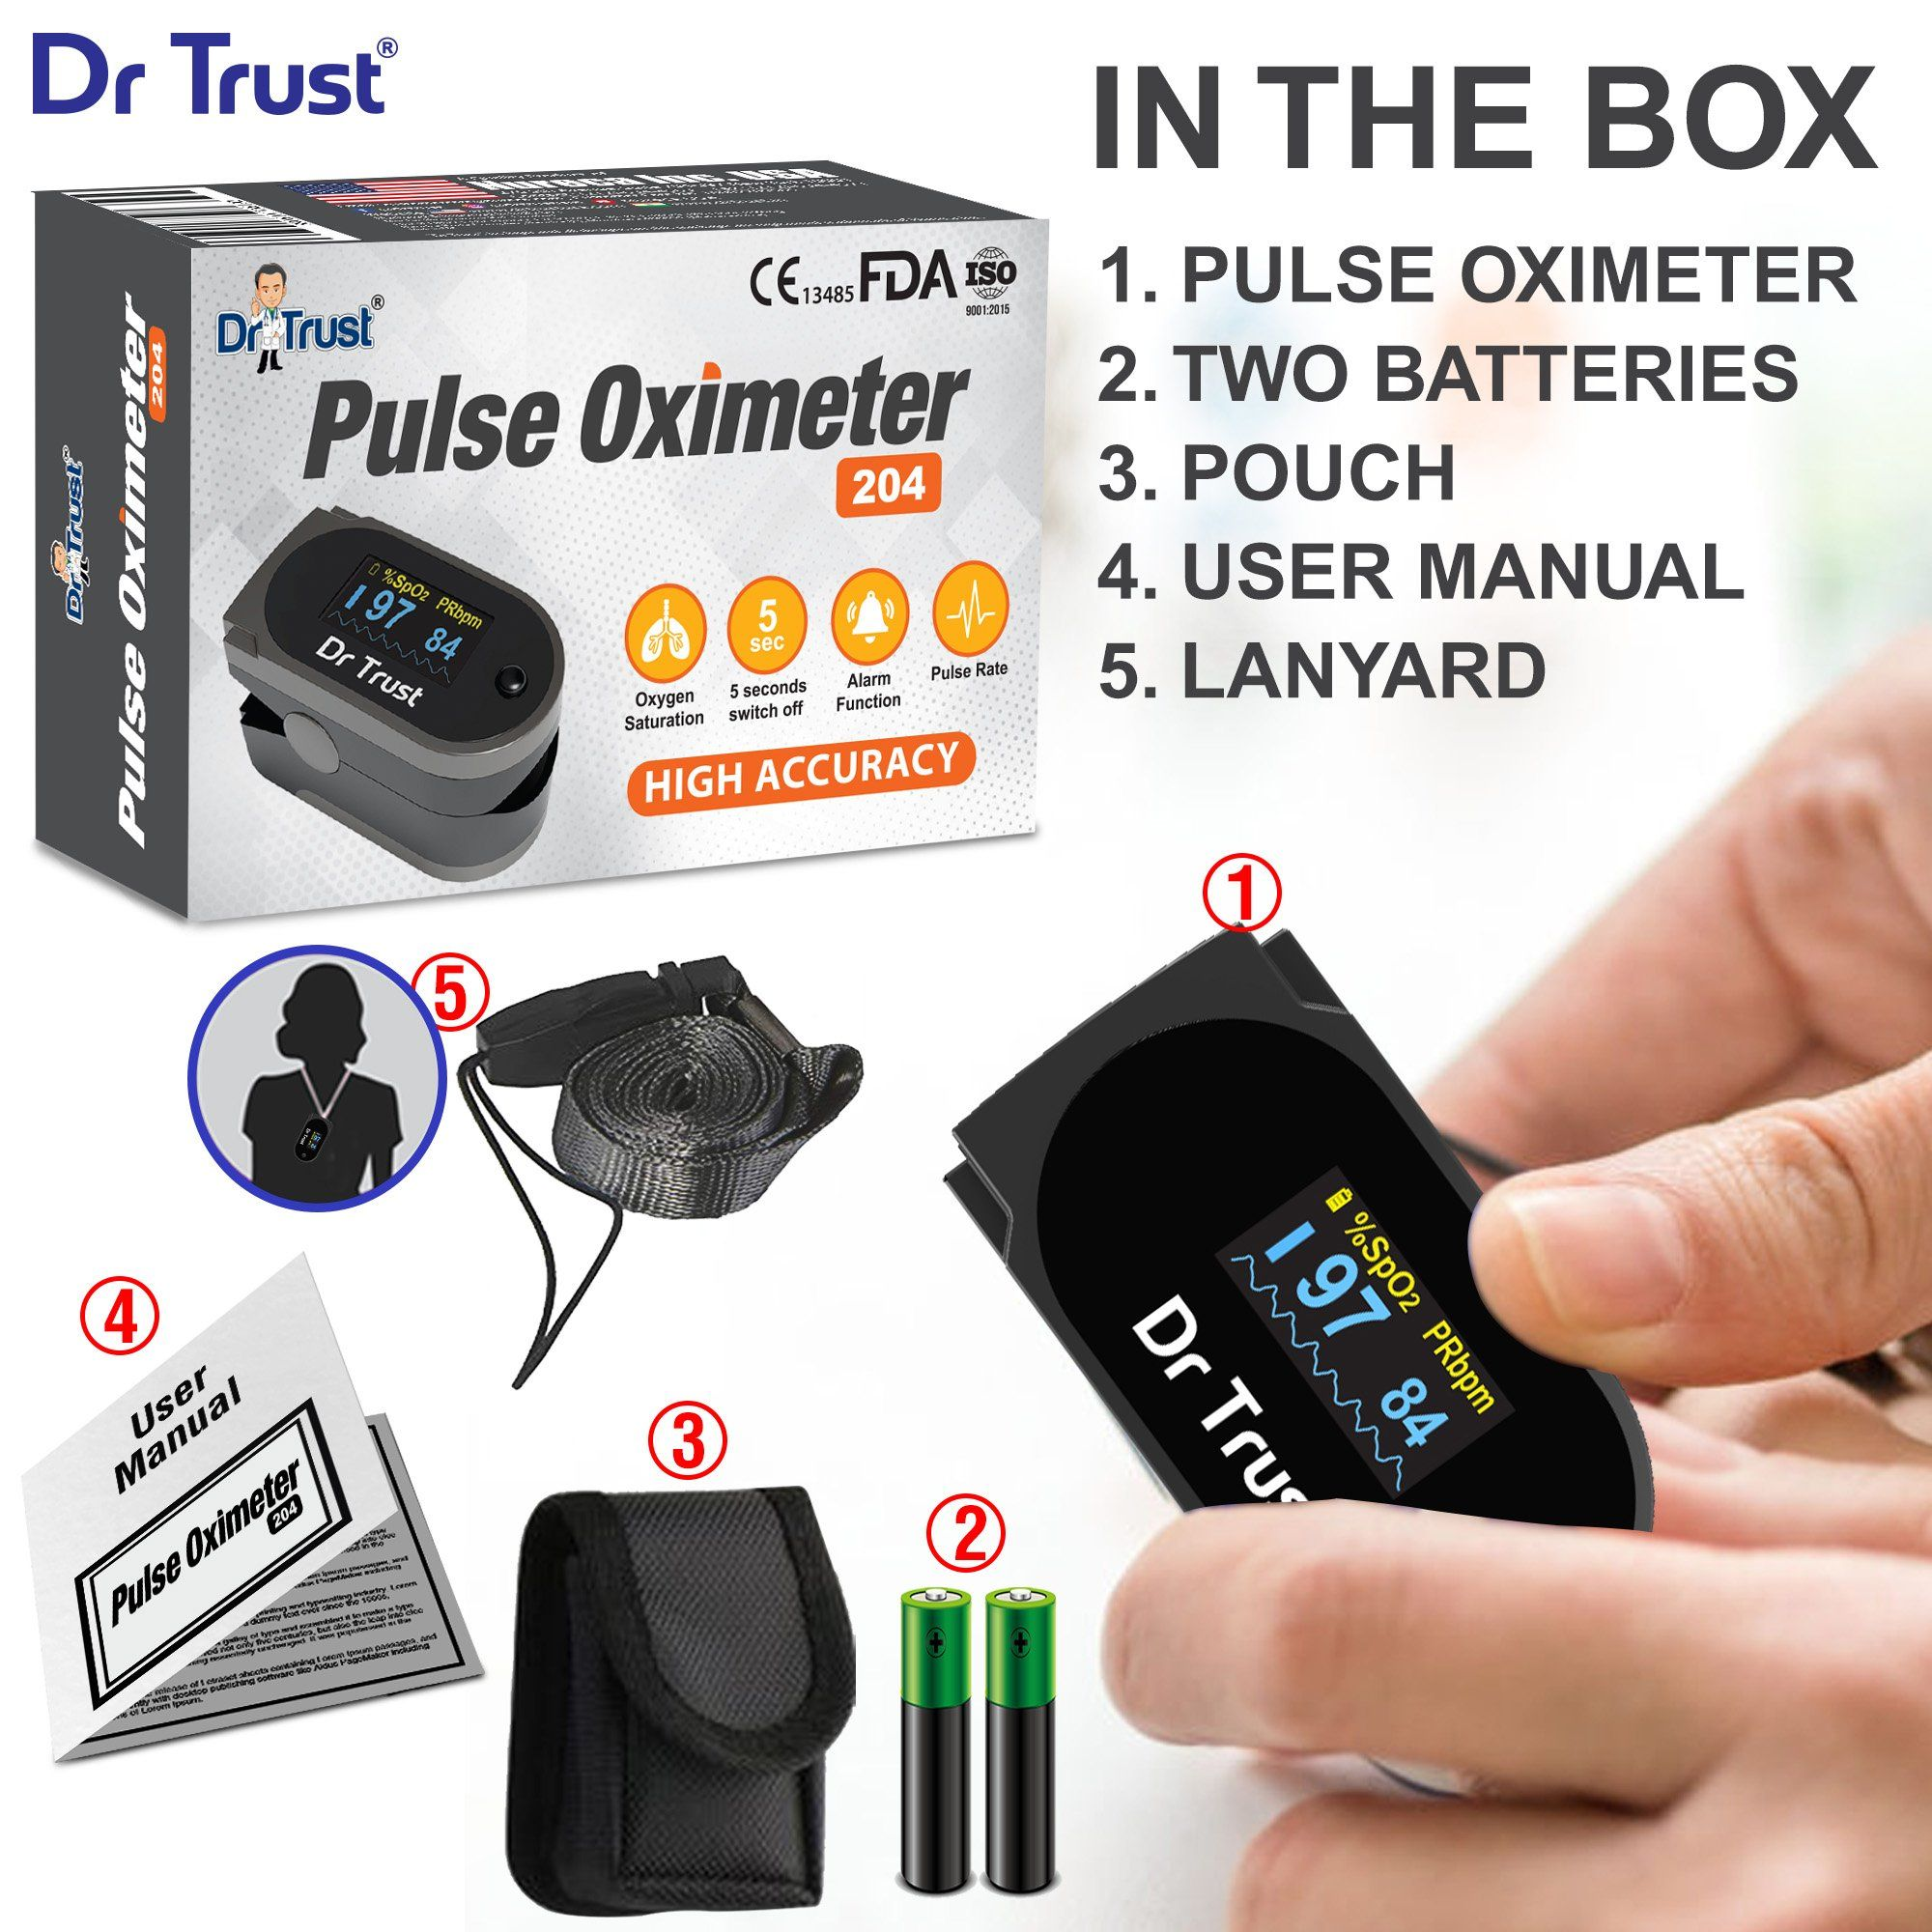 Dr Trust USA Pulse Oximeter Pulse Rate Monitor 204